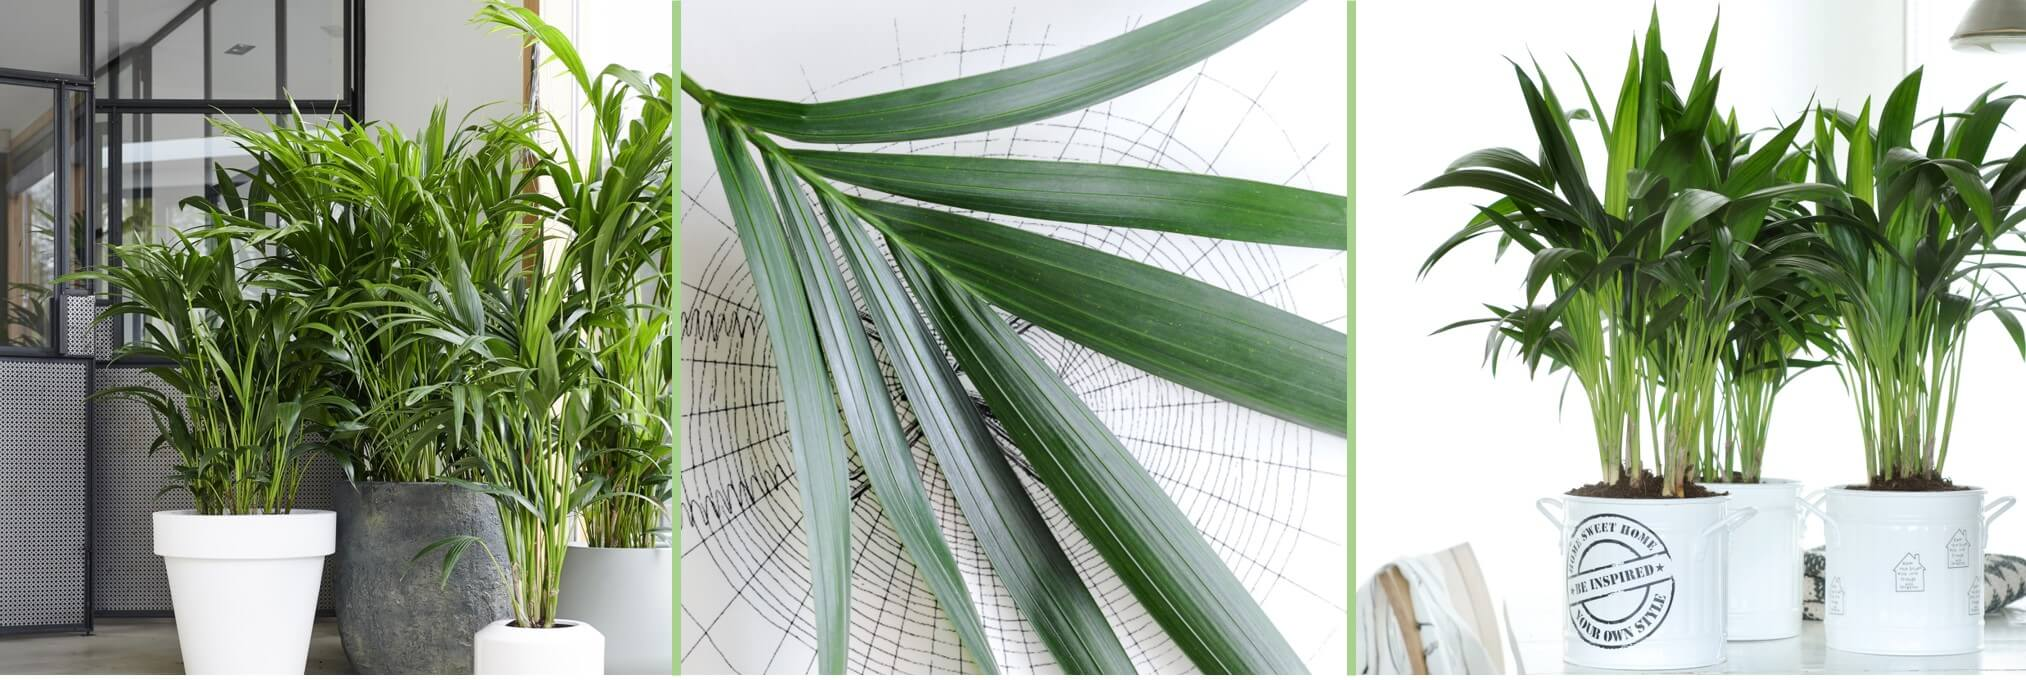 January 2019: Kentia Palm Houseplant of the Month